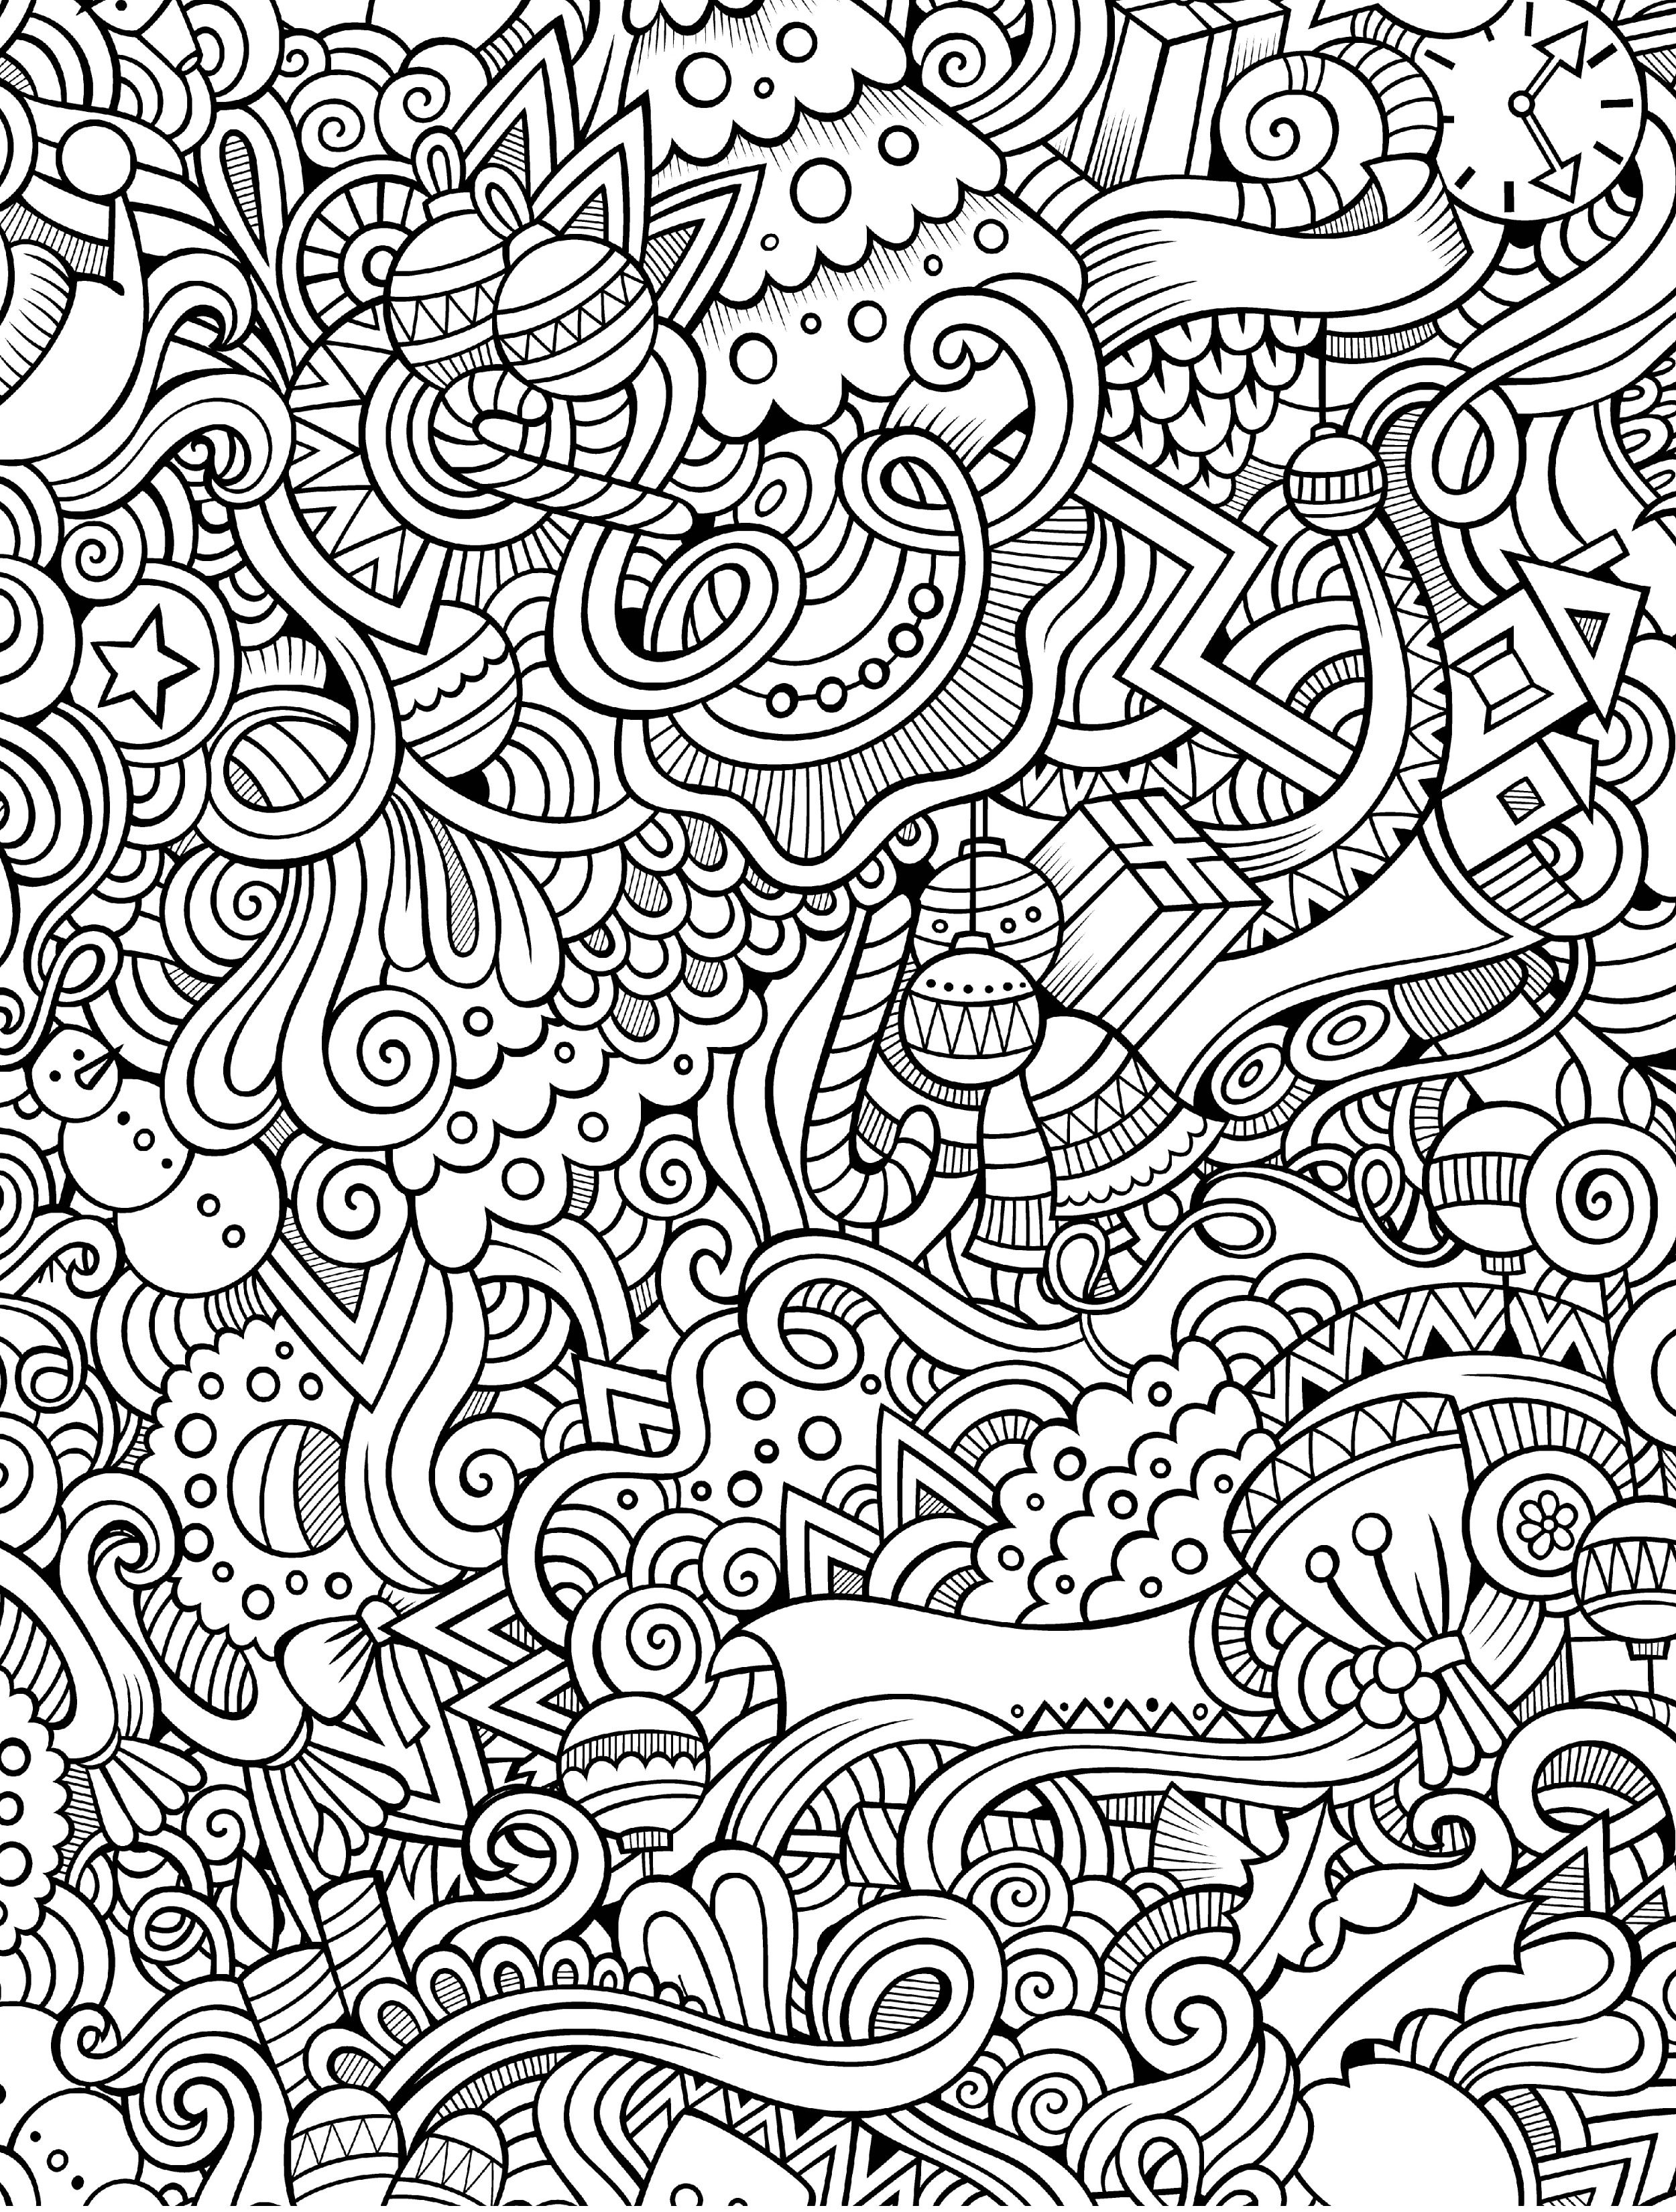 Free Coloring Books For Adults By Mail